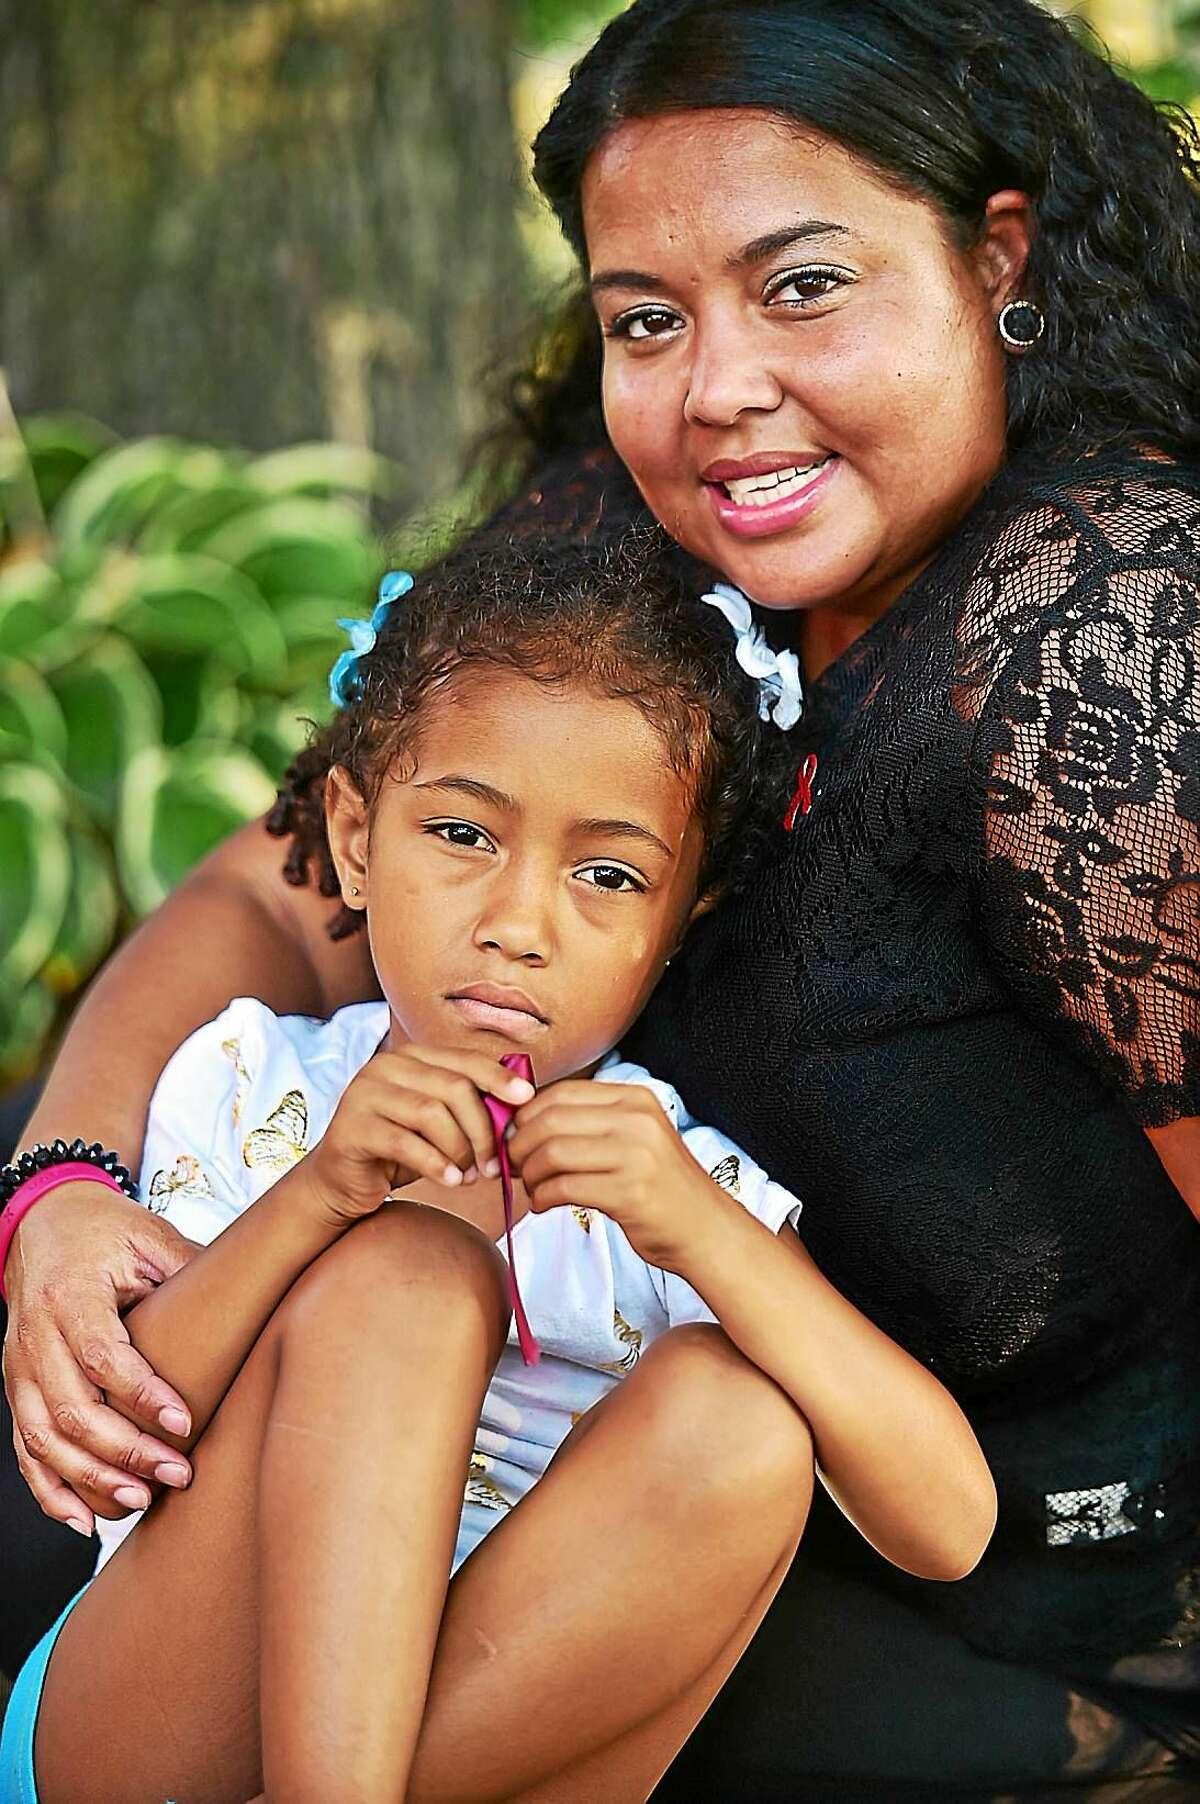 New Haven residents Amarilis Franjul and her 6-year-old daughter, Amarey Brookshire, following a press conference Wednesday at the Goffe Street Fire Station, for the upcoming sickle cell disease fundraising campaign in New Haven.